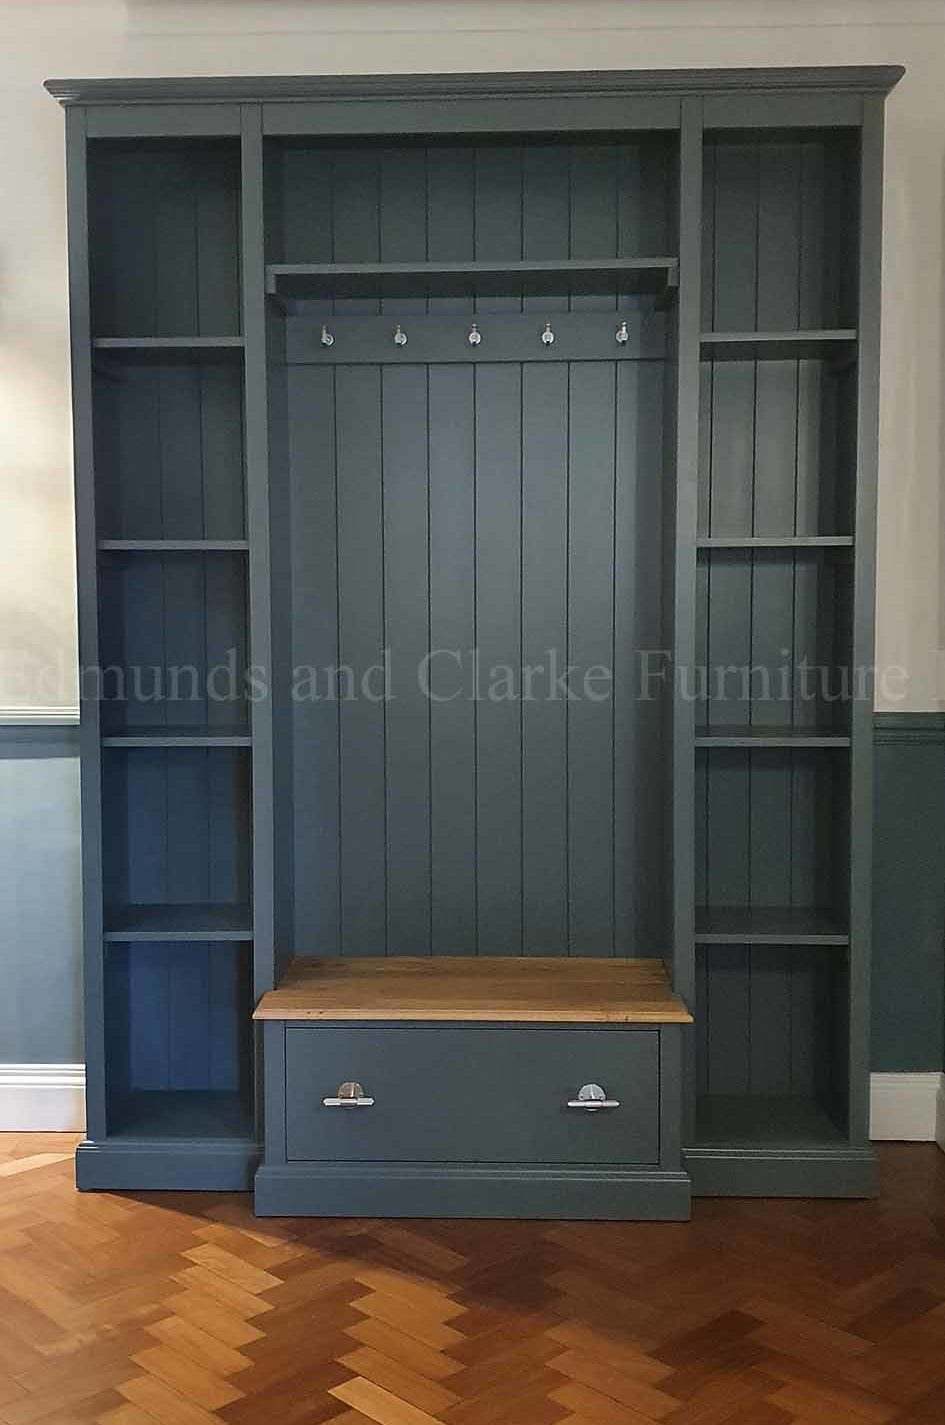 Painted hallway shelving and shoe storage with large drawer